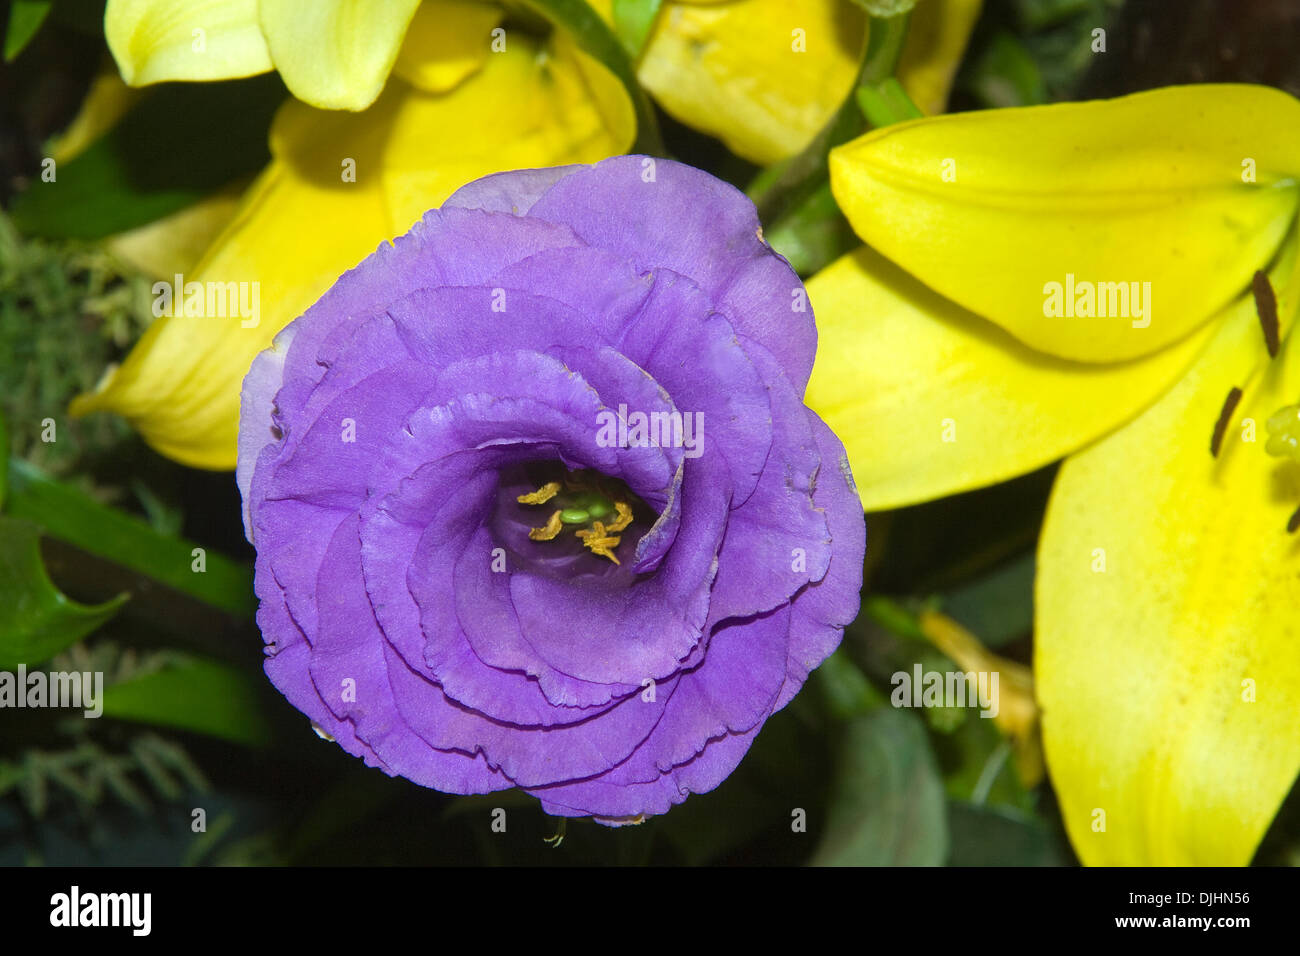 Flower with violet colored petals thickly wound in spiral fashion - Stock Image